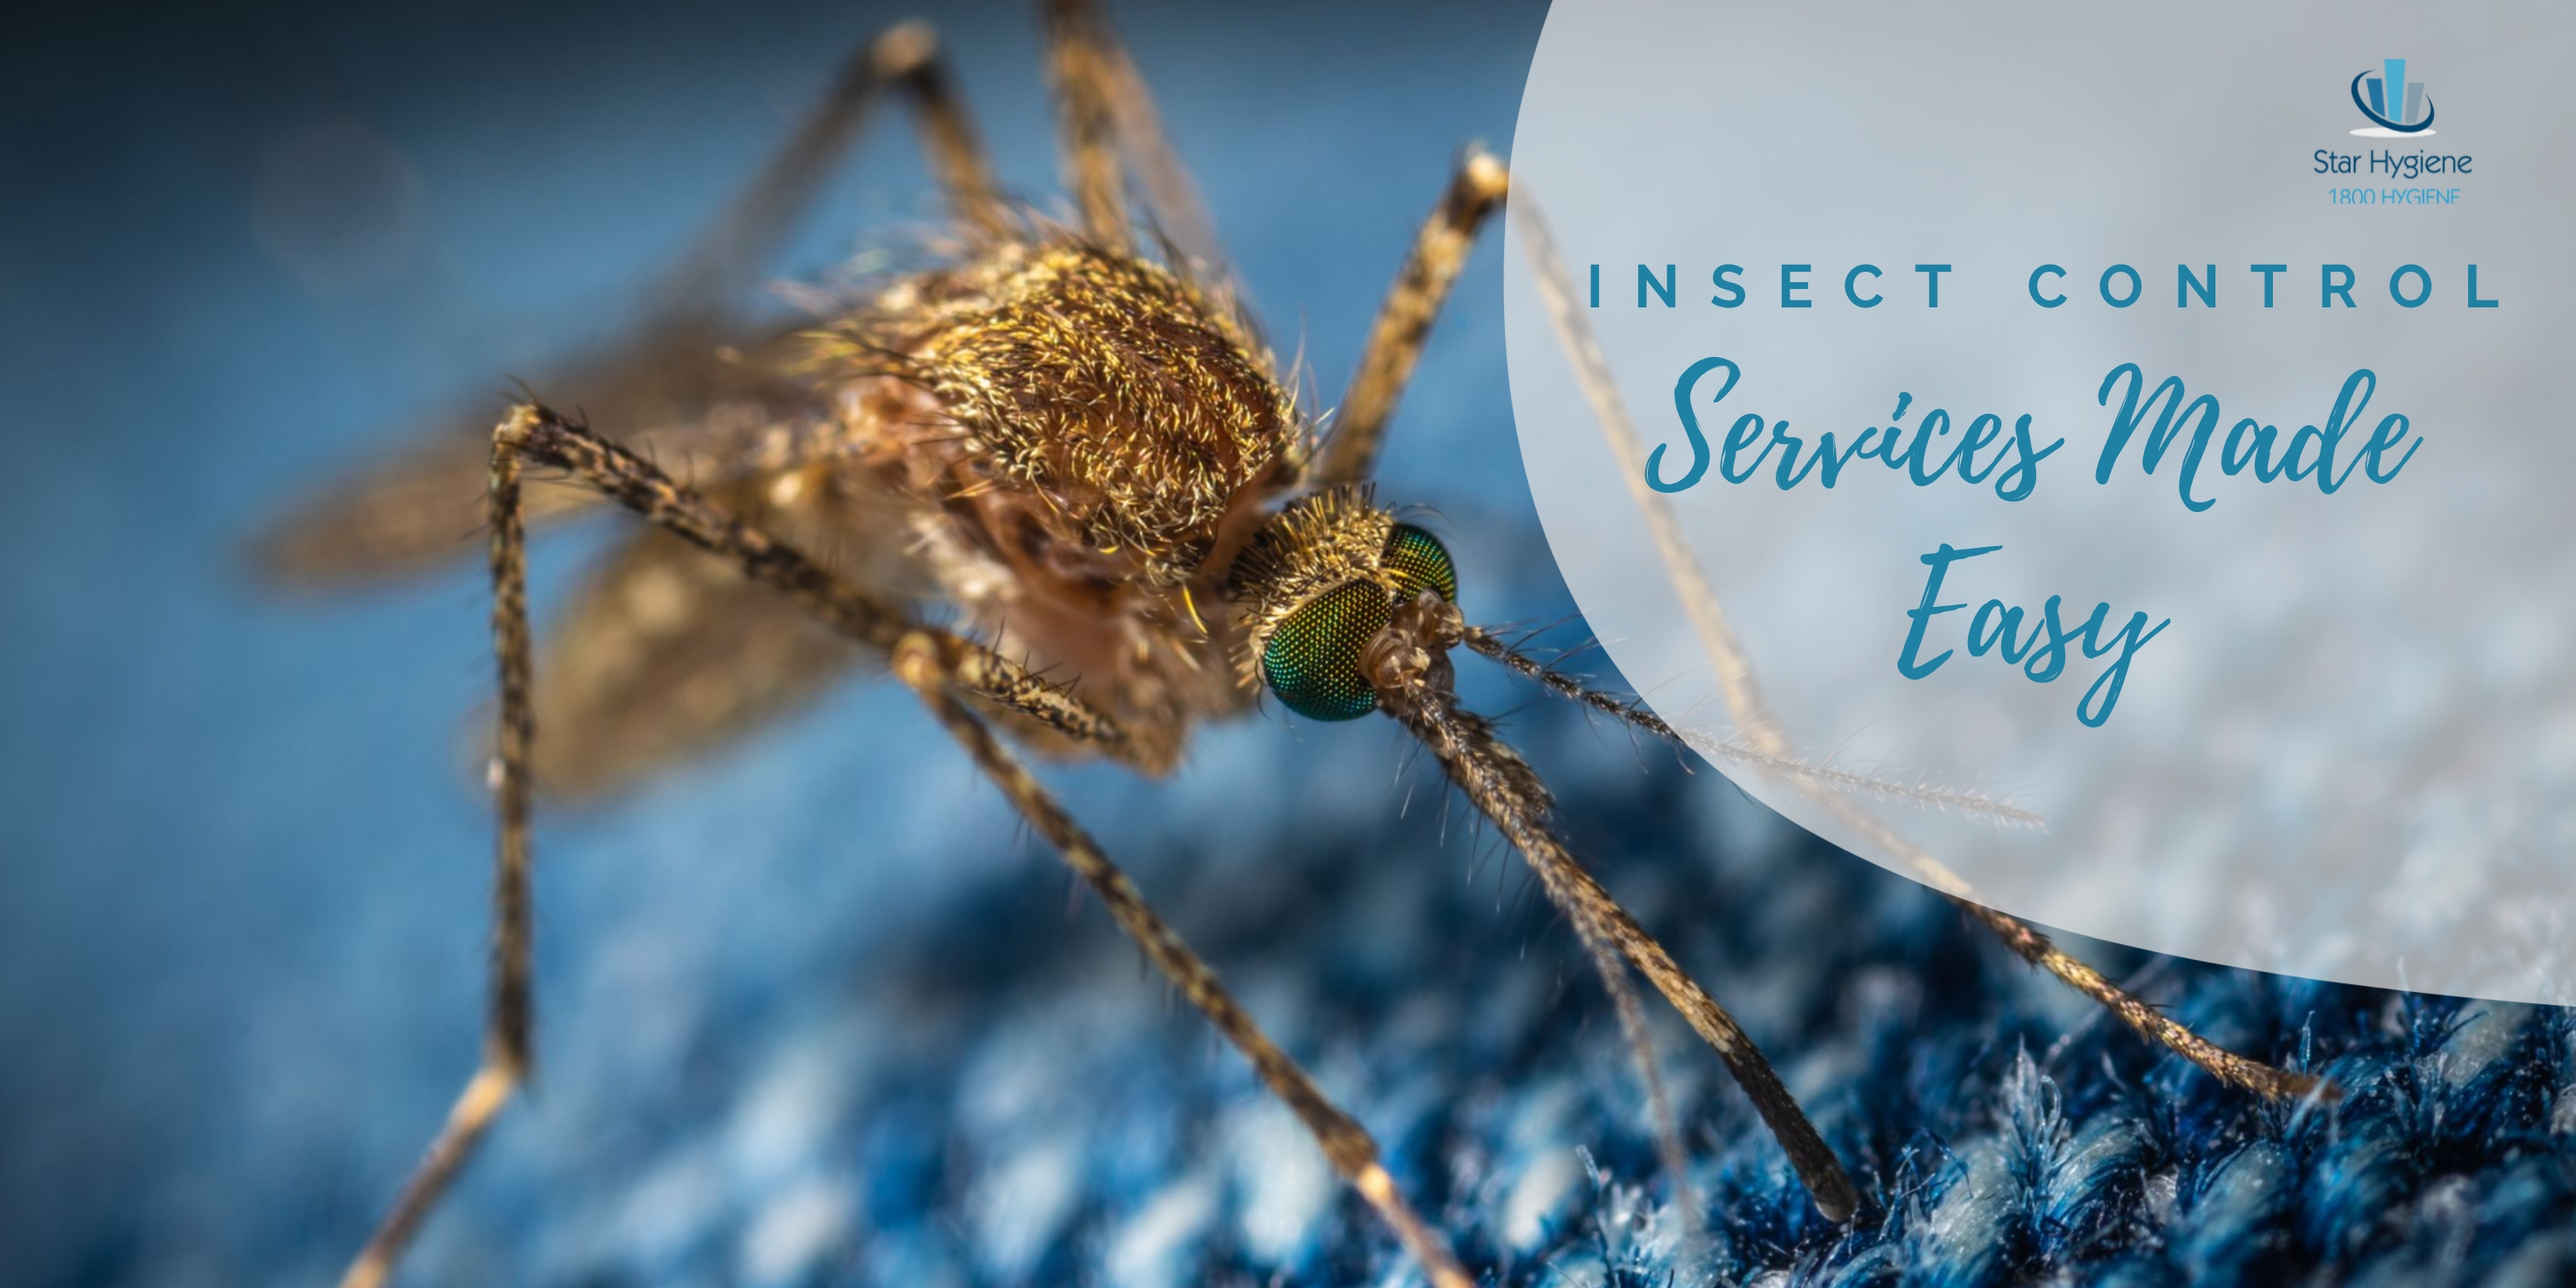 insect-control-website-header-2.jpg